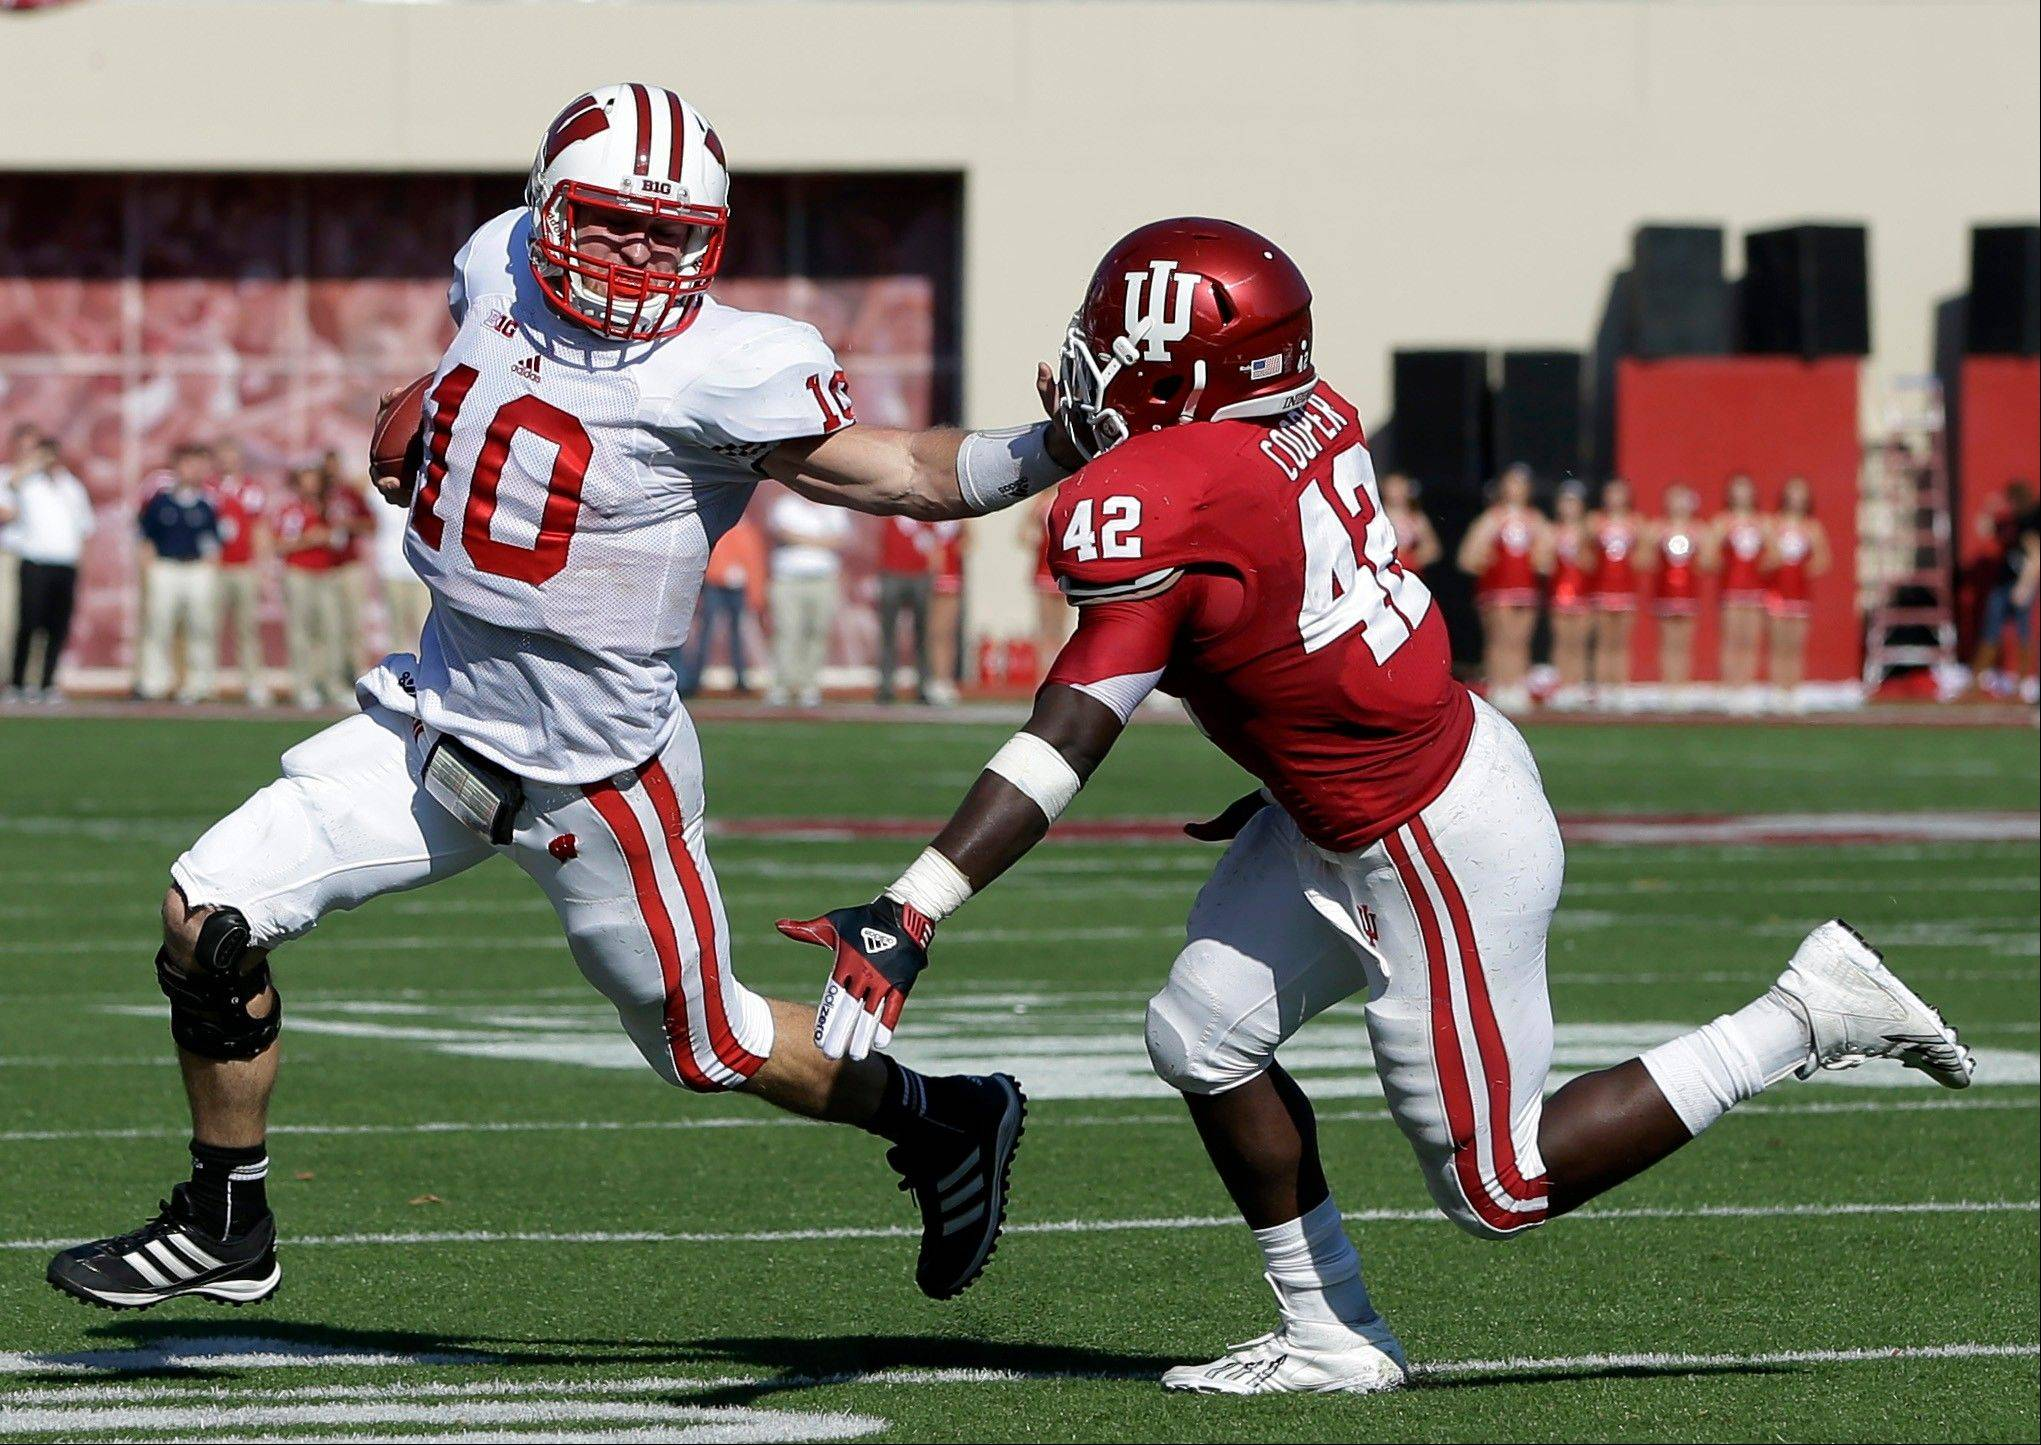 Wisconsin quarterback Curt Phillips (10) is chased by Indiana's David Cooper during the first half of an NCAA college football game, Saturday, Nov. 10, 2012, in Bloomington, Ind.